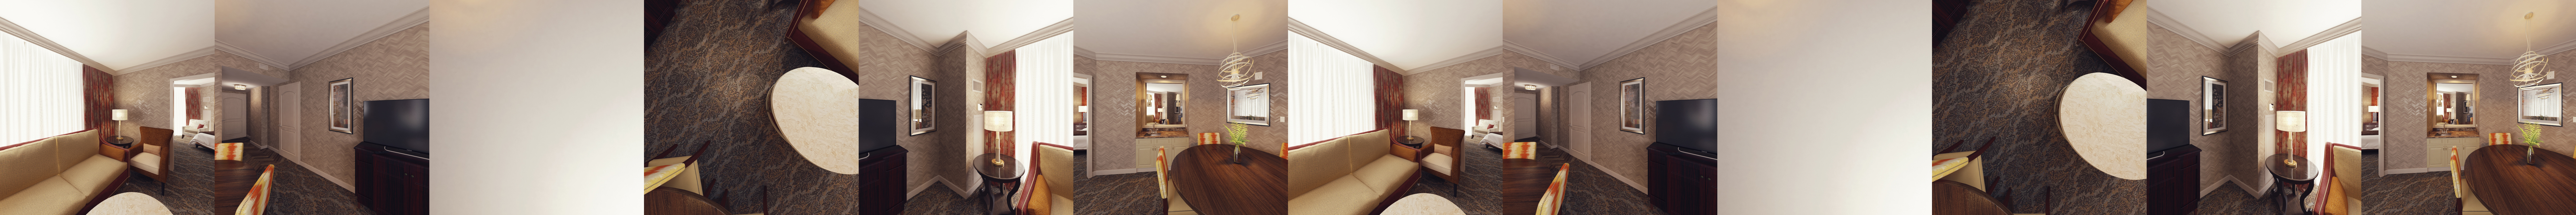 Scheme 1: 4D Immersive Living Room / Entry